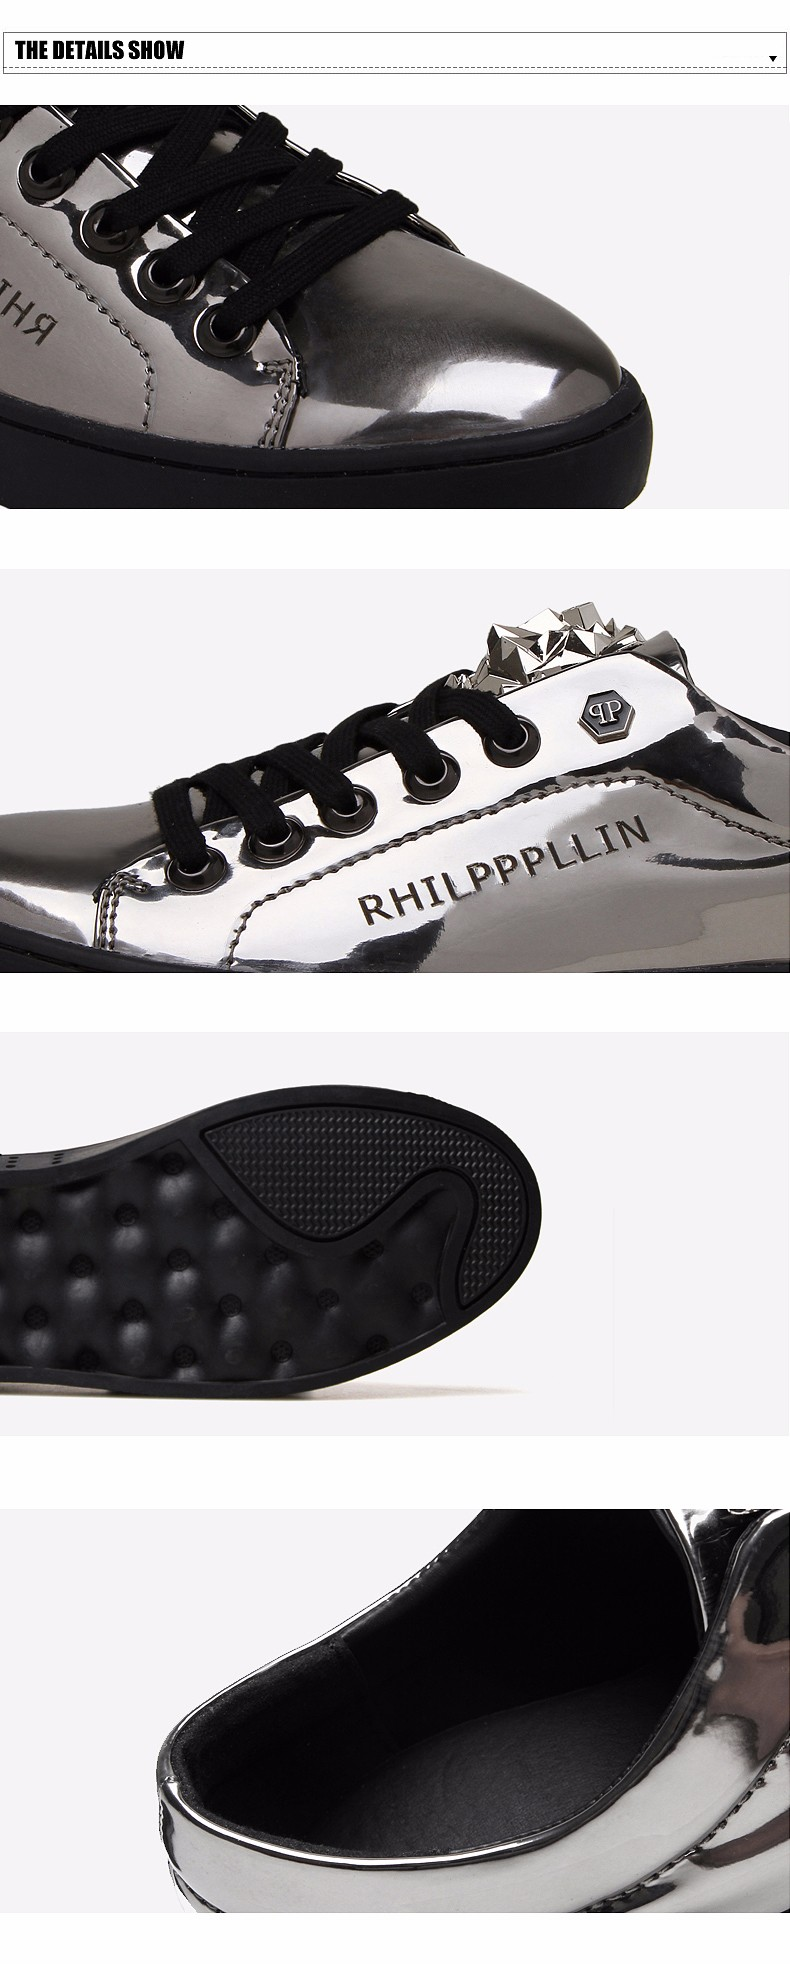 KUYUPP 2016 High Quality PU Patent Leather Men Flats Shoes Leopard Head Sequined Skate Shoes Round Toe Lace Up Men Flat Heel Y31 (6)